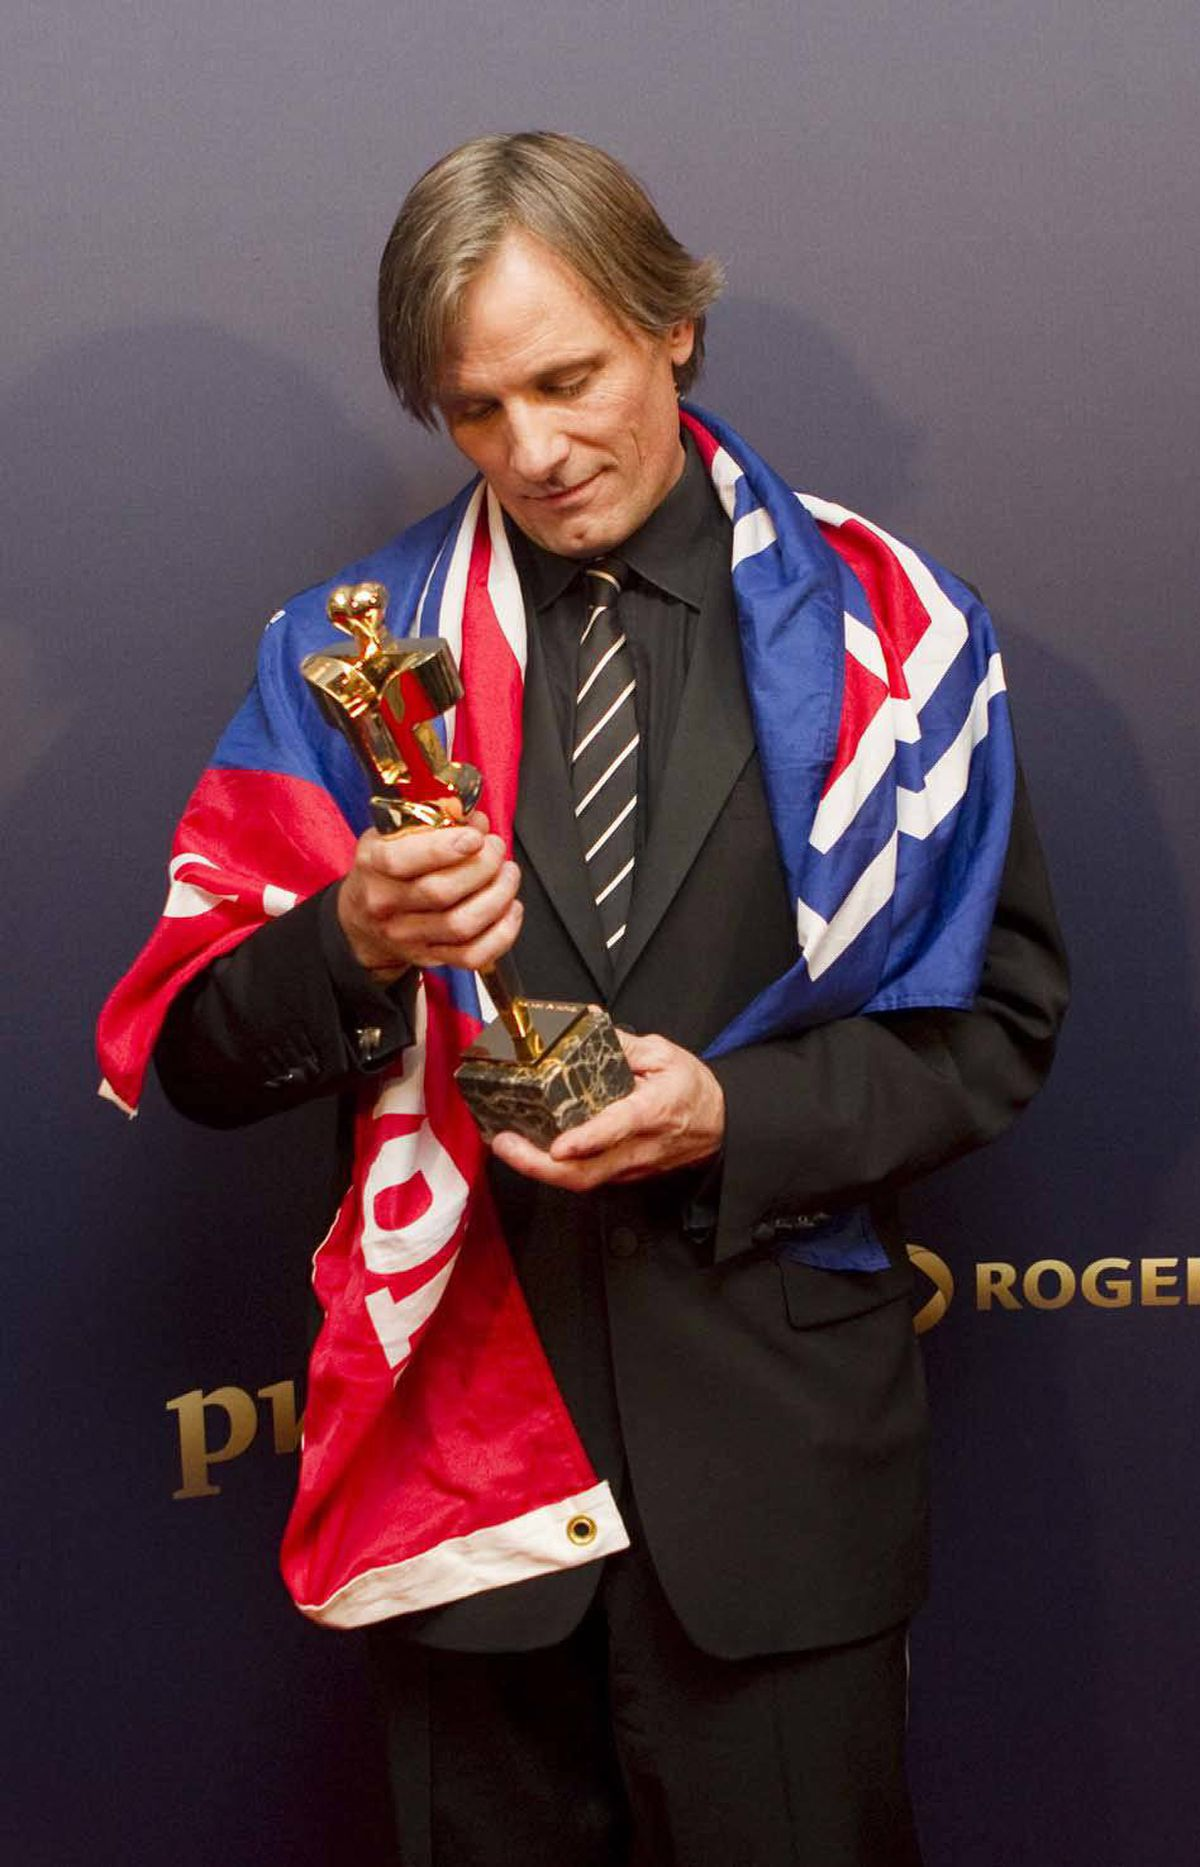 Viggo Mortensen wonders if he can melt down his Genie award and make an Oscar out of it at the Genie Awards in Toronto last week.